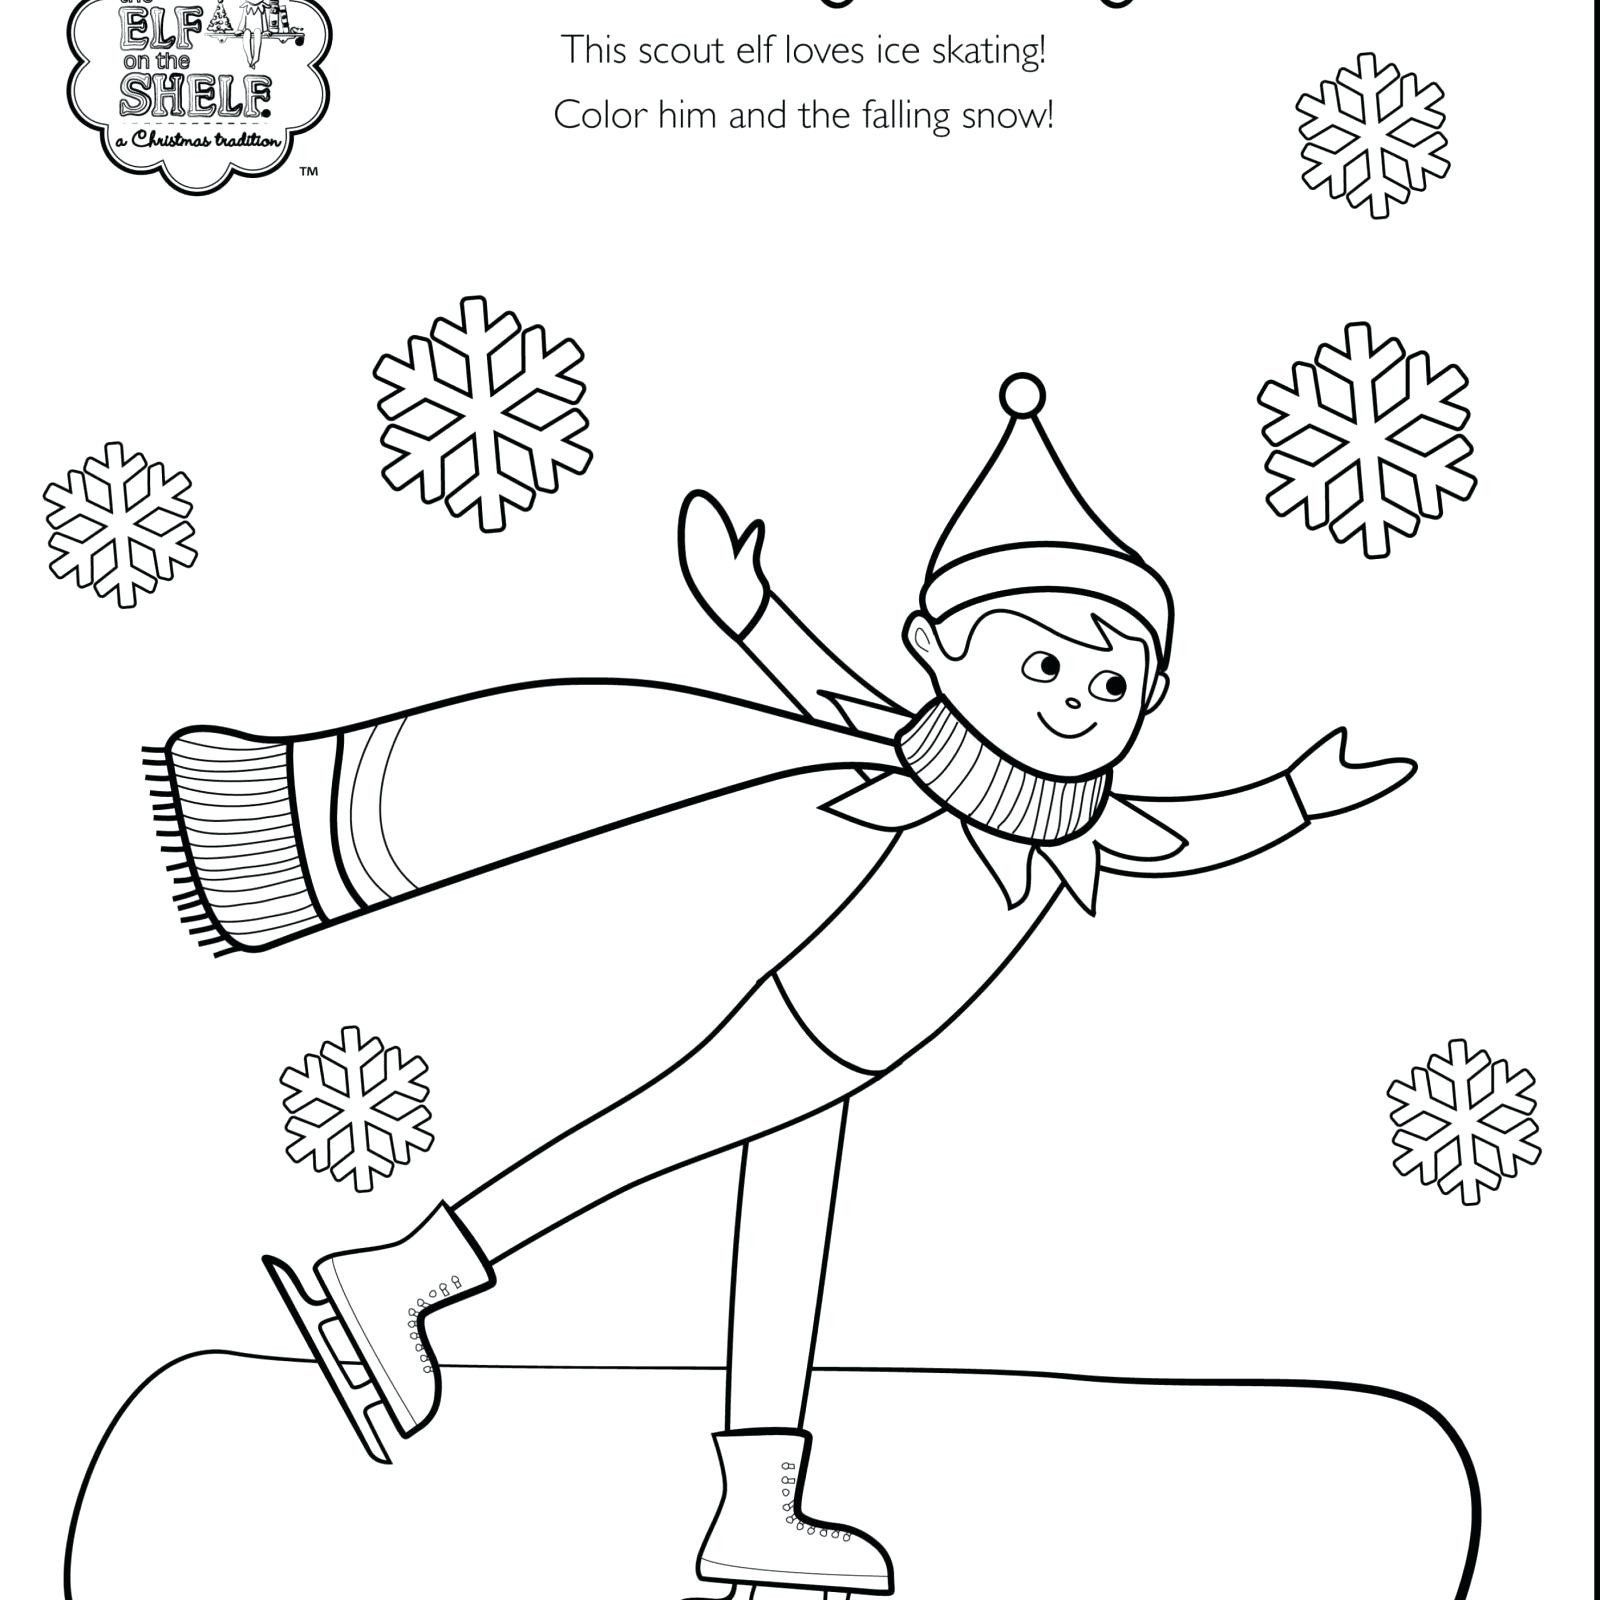 Elf On The Shelf Coloring Pages Beautiful Elf On A Shelf Coloring Pages Free Bestofpage Bird Coloring Pages Coloring Pages Disney Coloring Pages